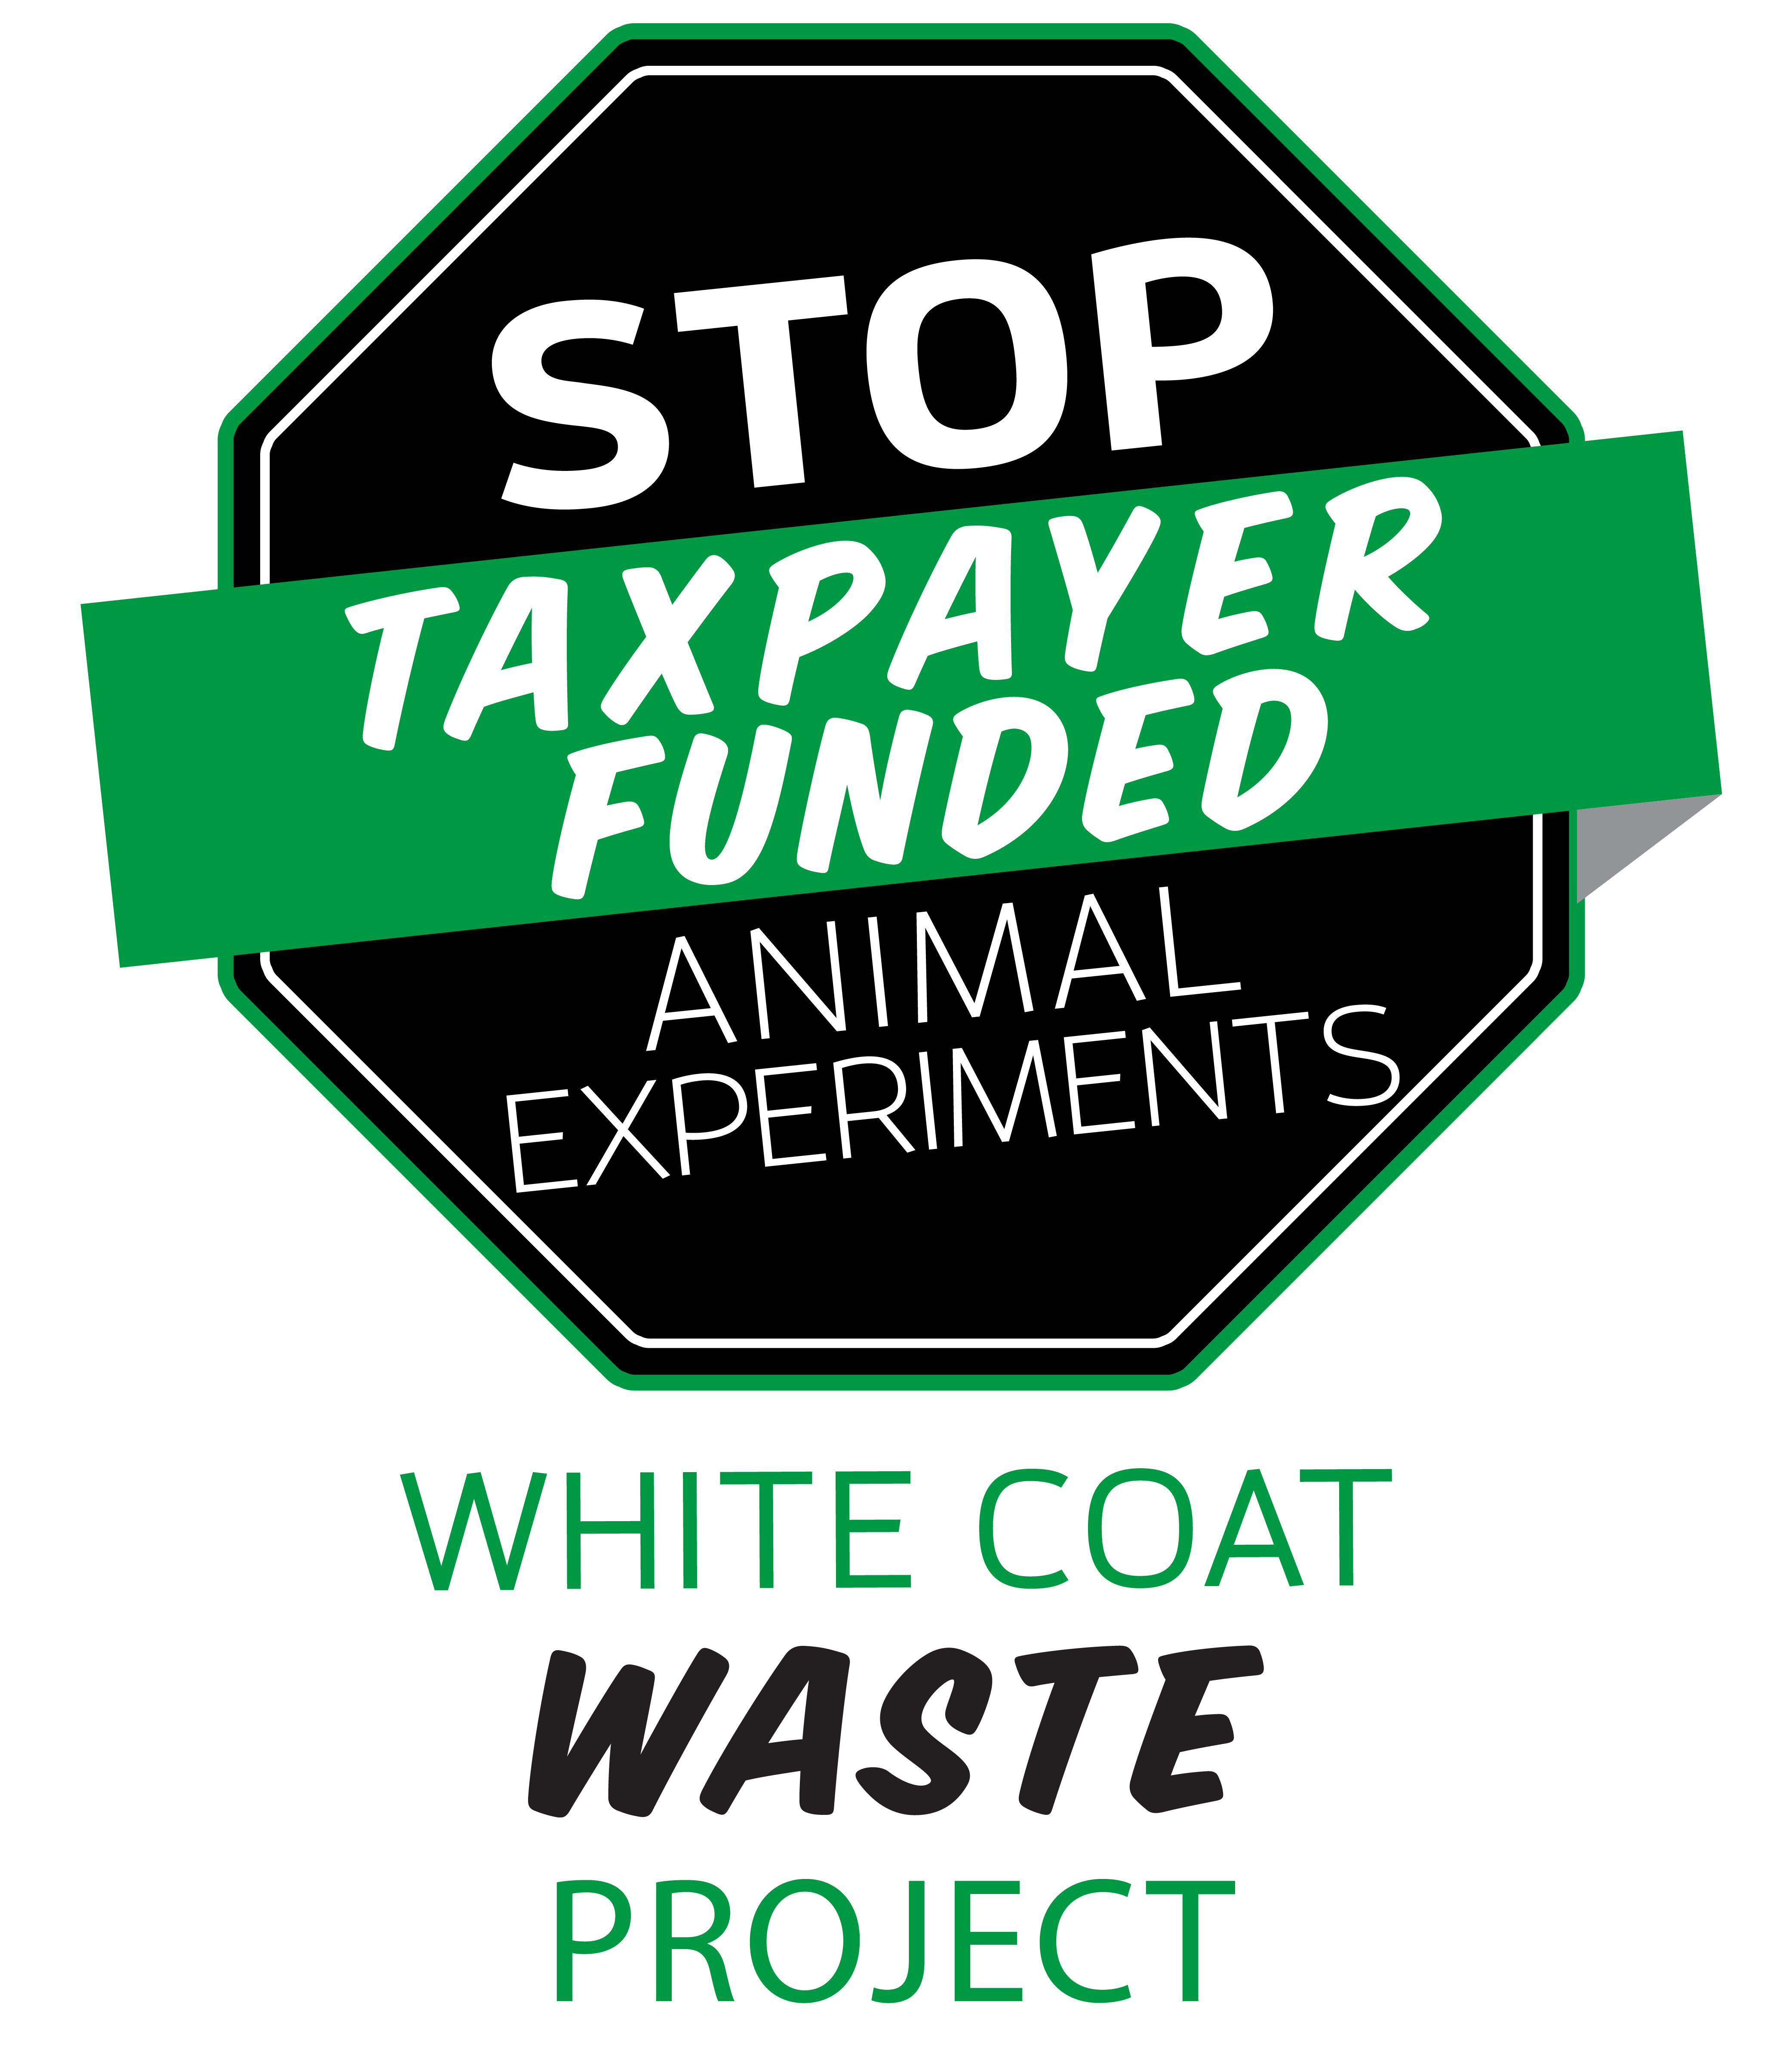 White Coat Waste Project